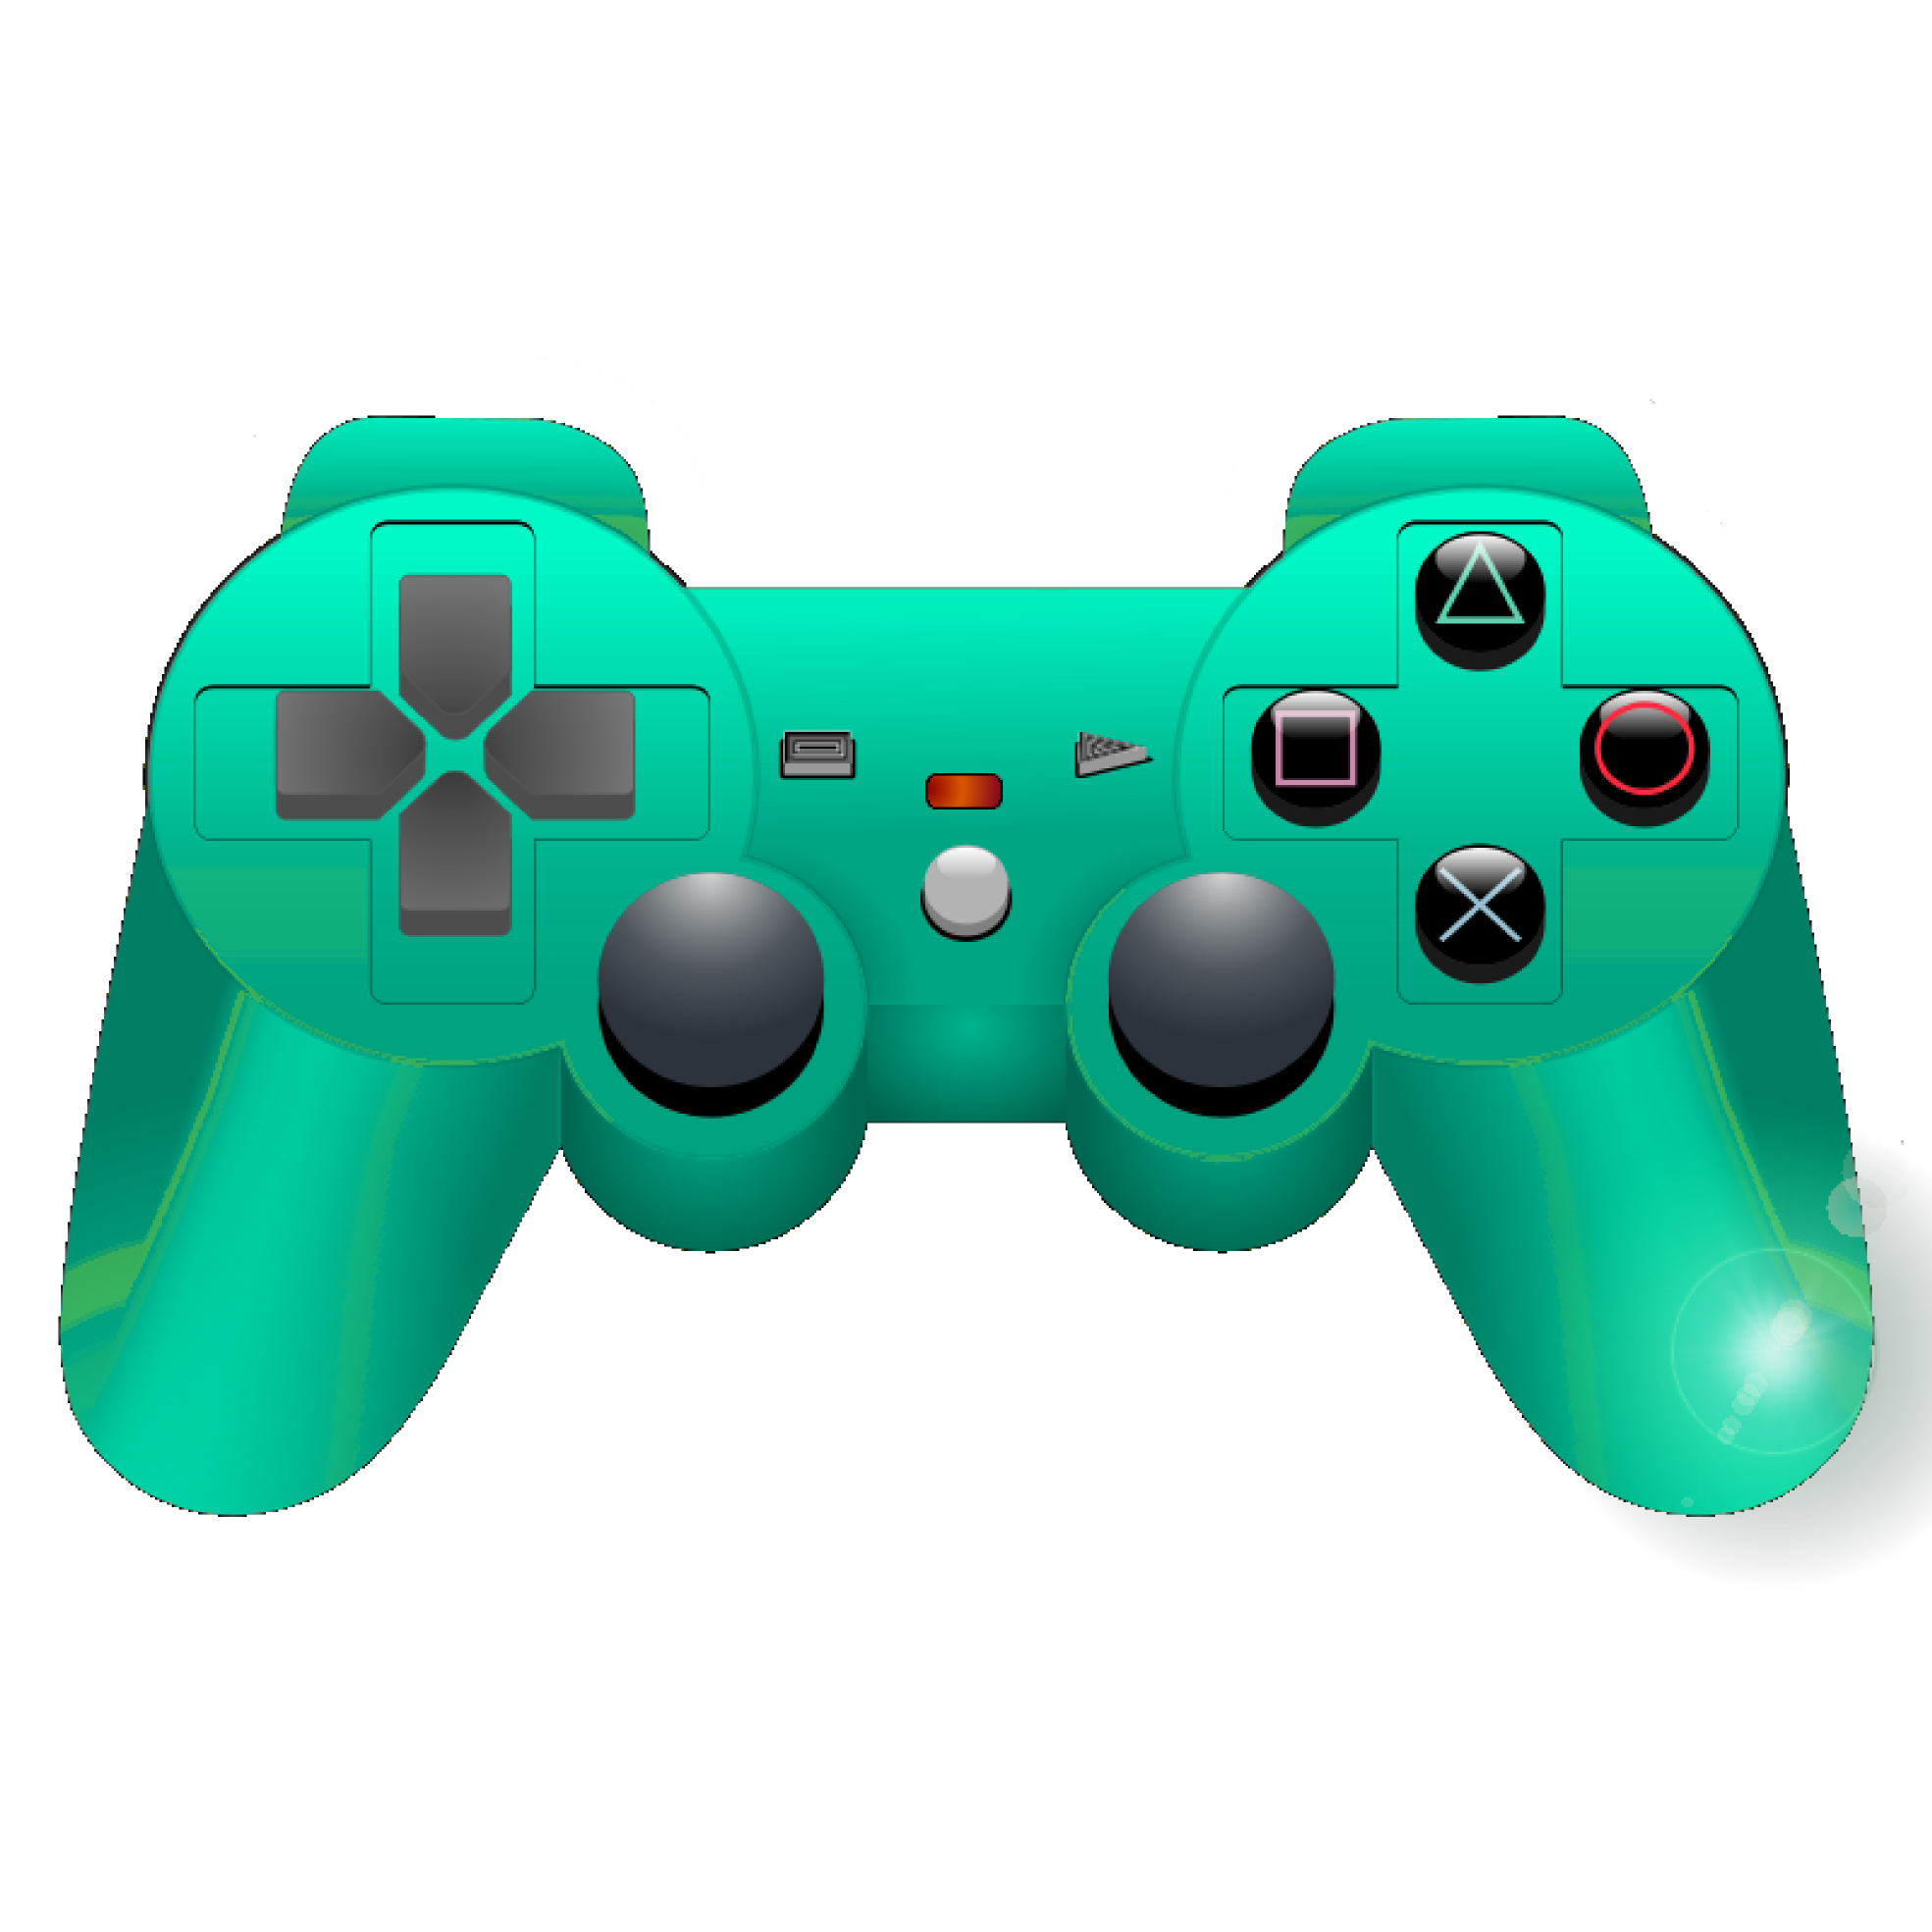 Video games clipart png. Free controller cliparts download